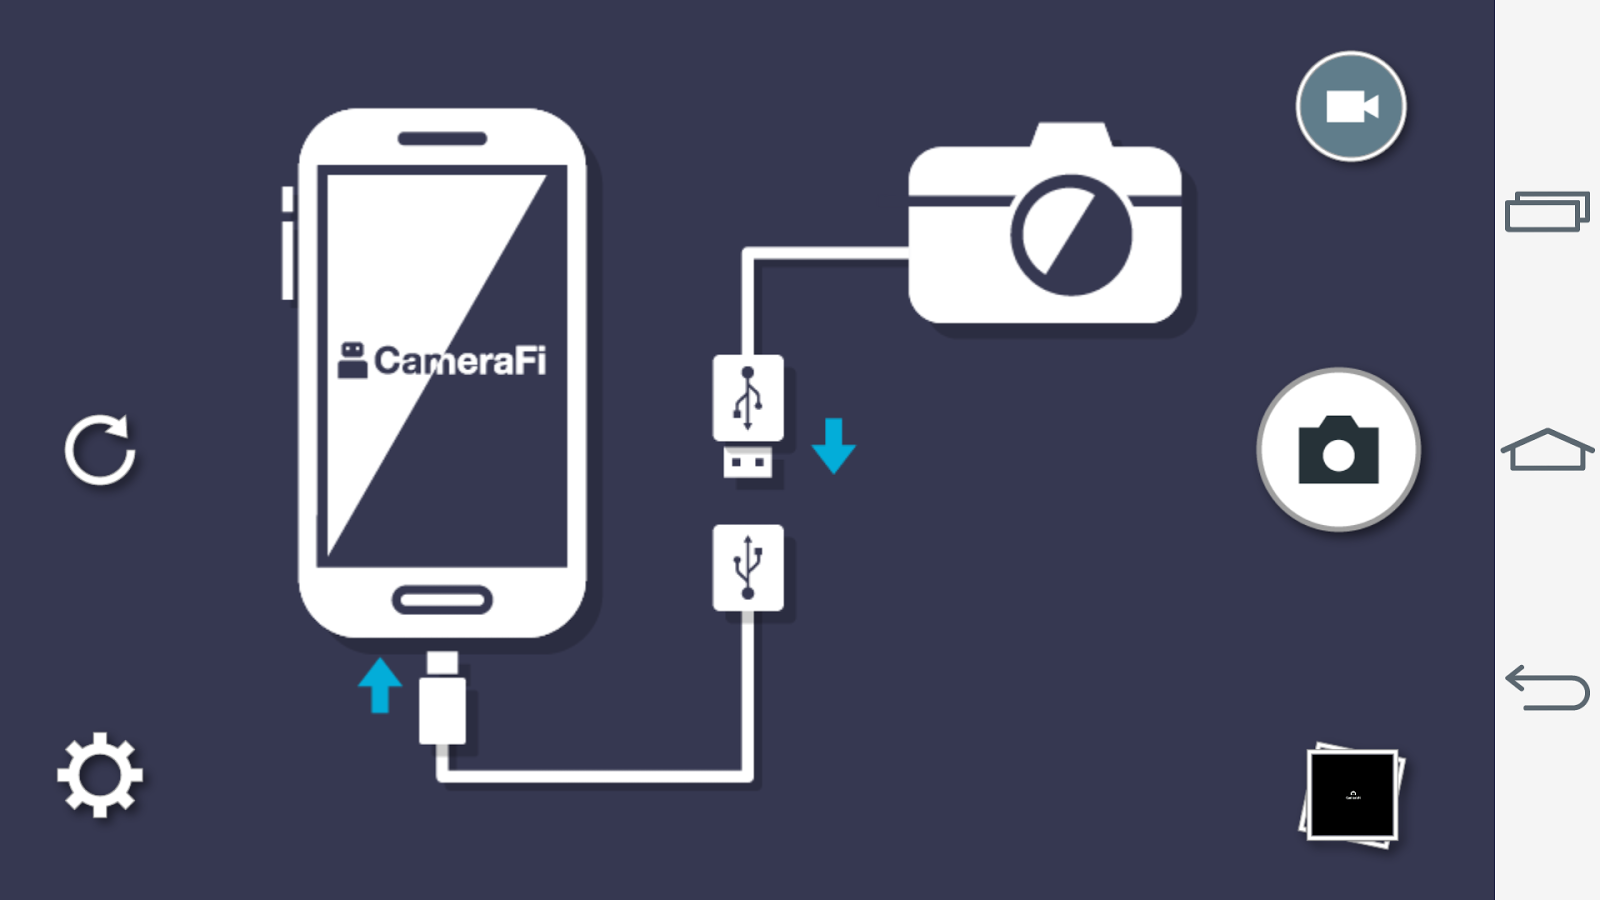 CameraFi - USB Camera / Webcam – zrzut ekranu